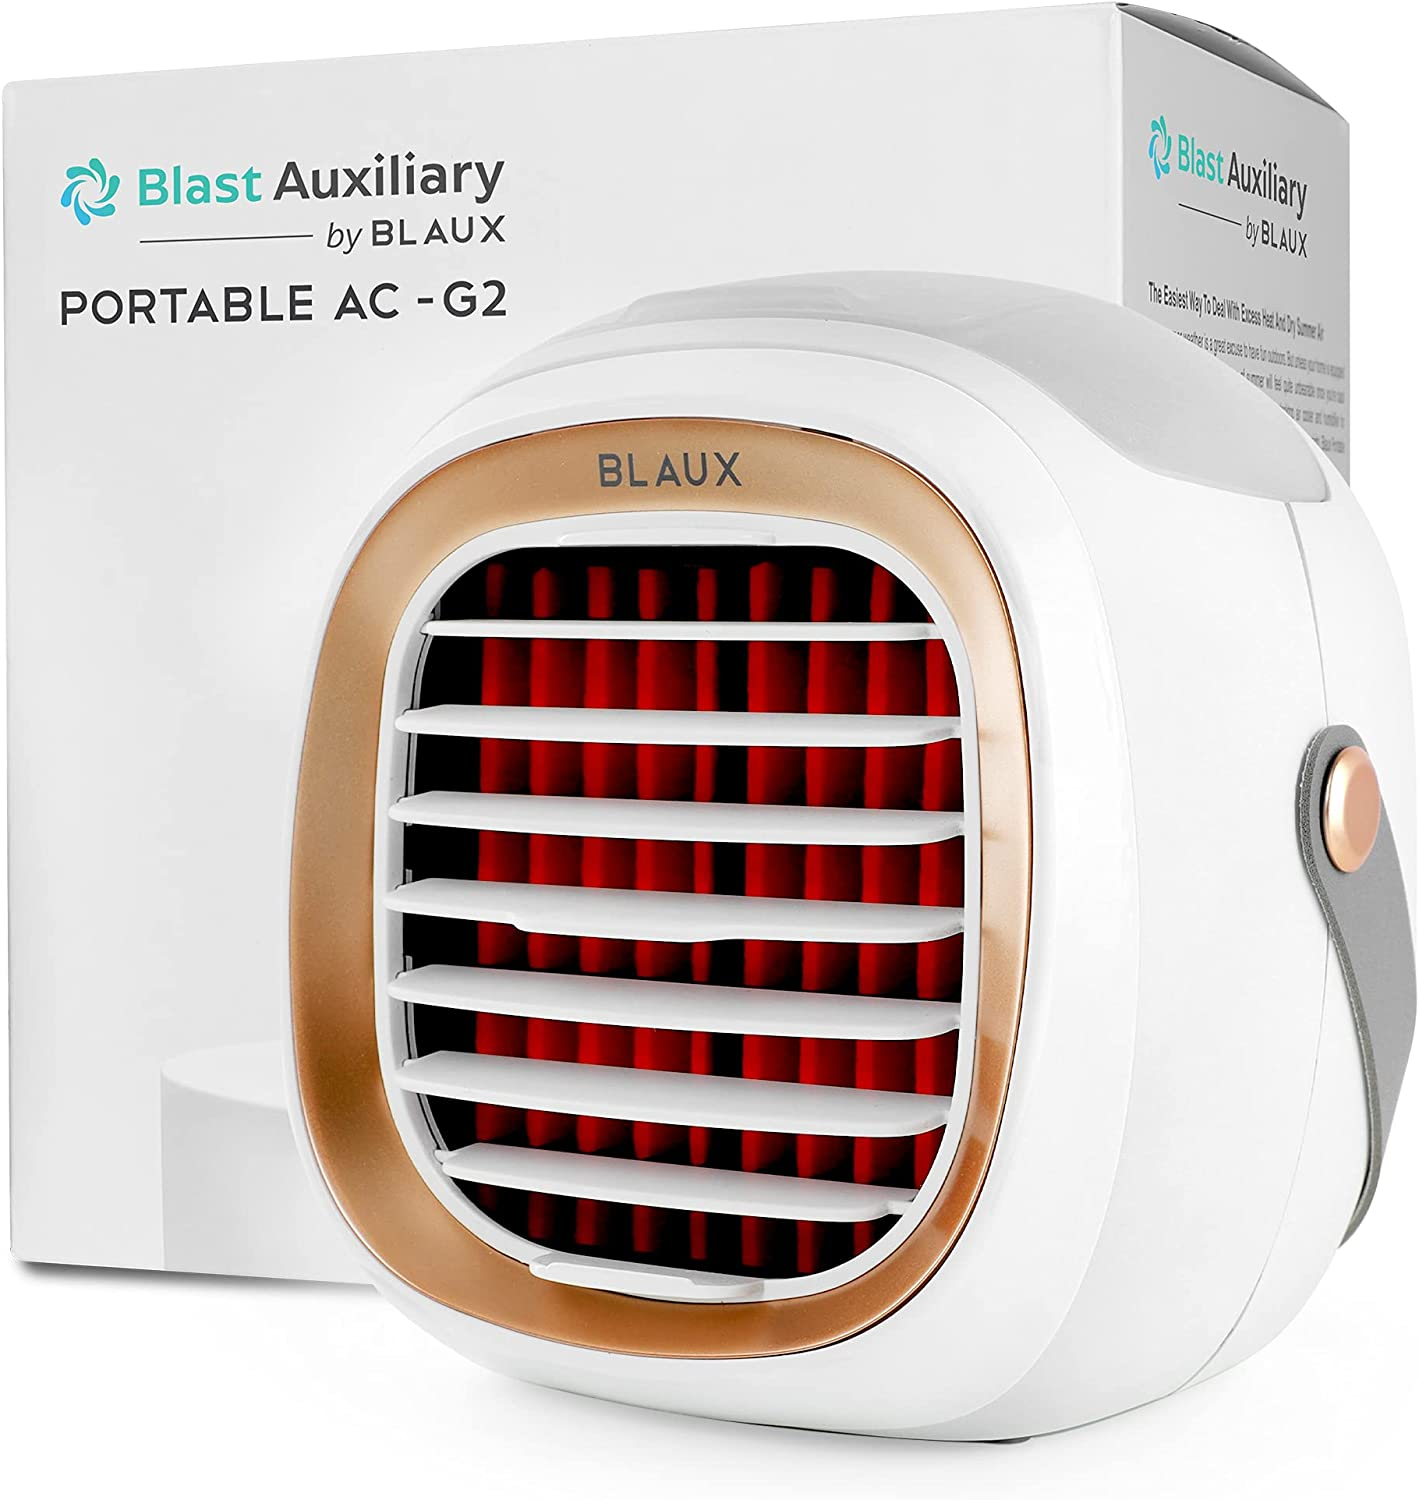 BLAUX Evaporative Air Cooler G2 Auxiliary - Jacksonville Mall Coole Personal Blast Product